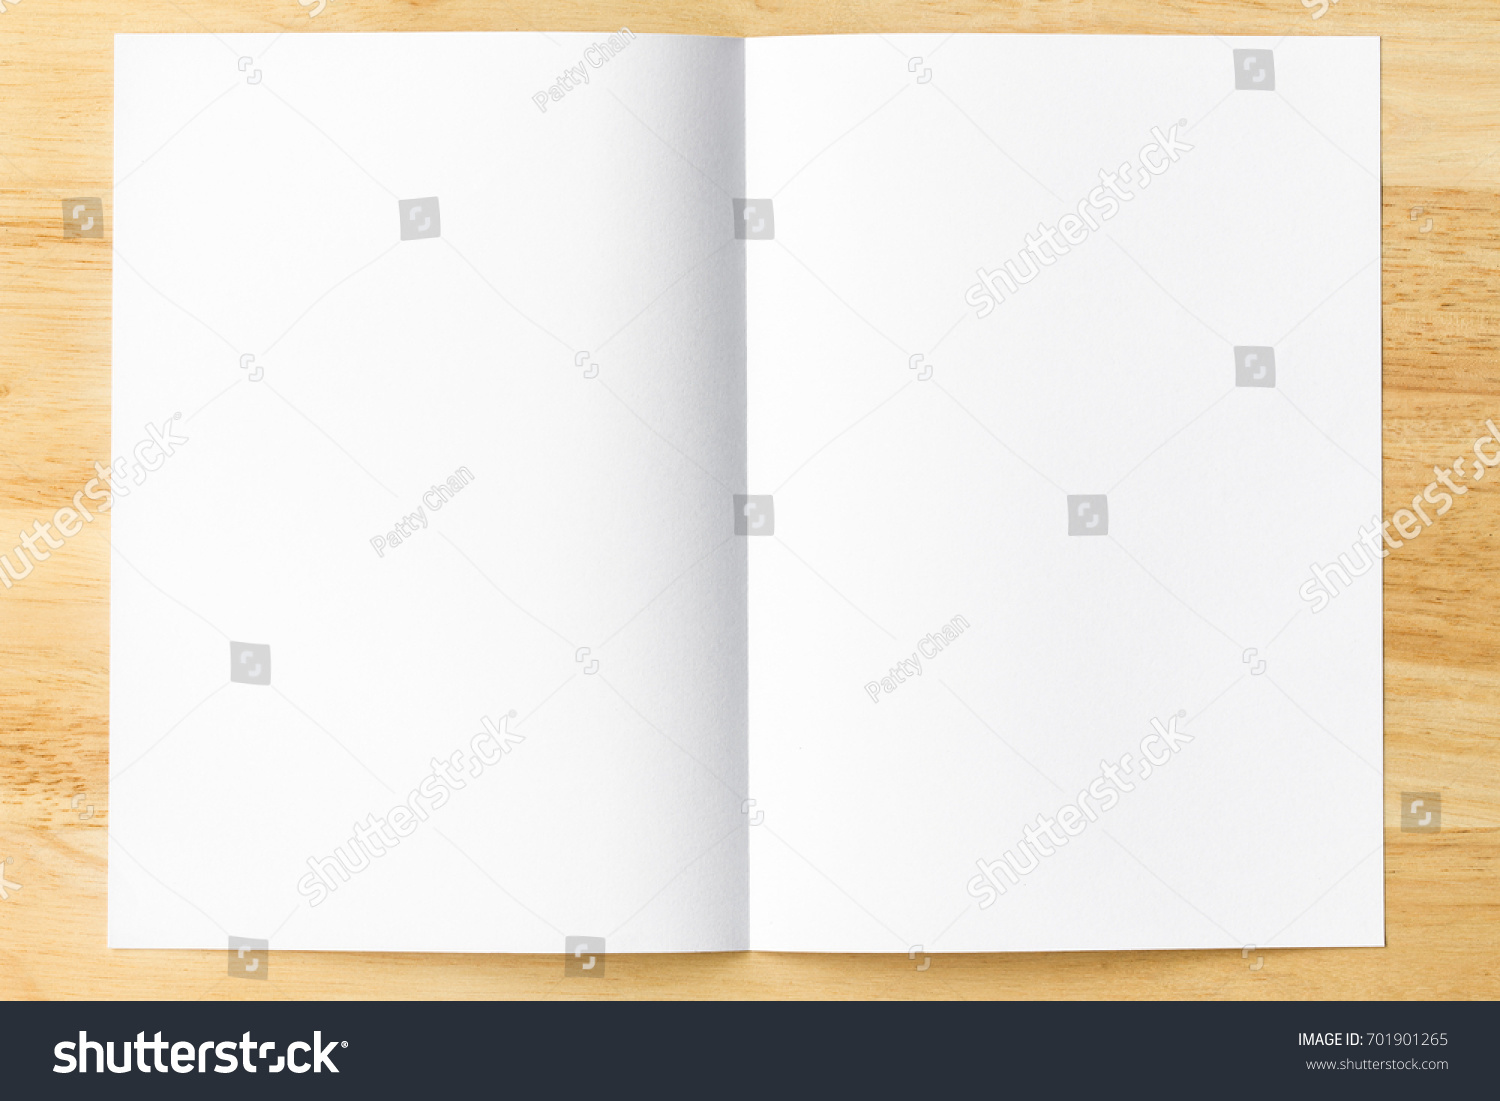 Blank Book Paper Pages On Wood Table. Template For Content Background.  White Folded Paper